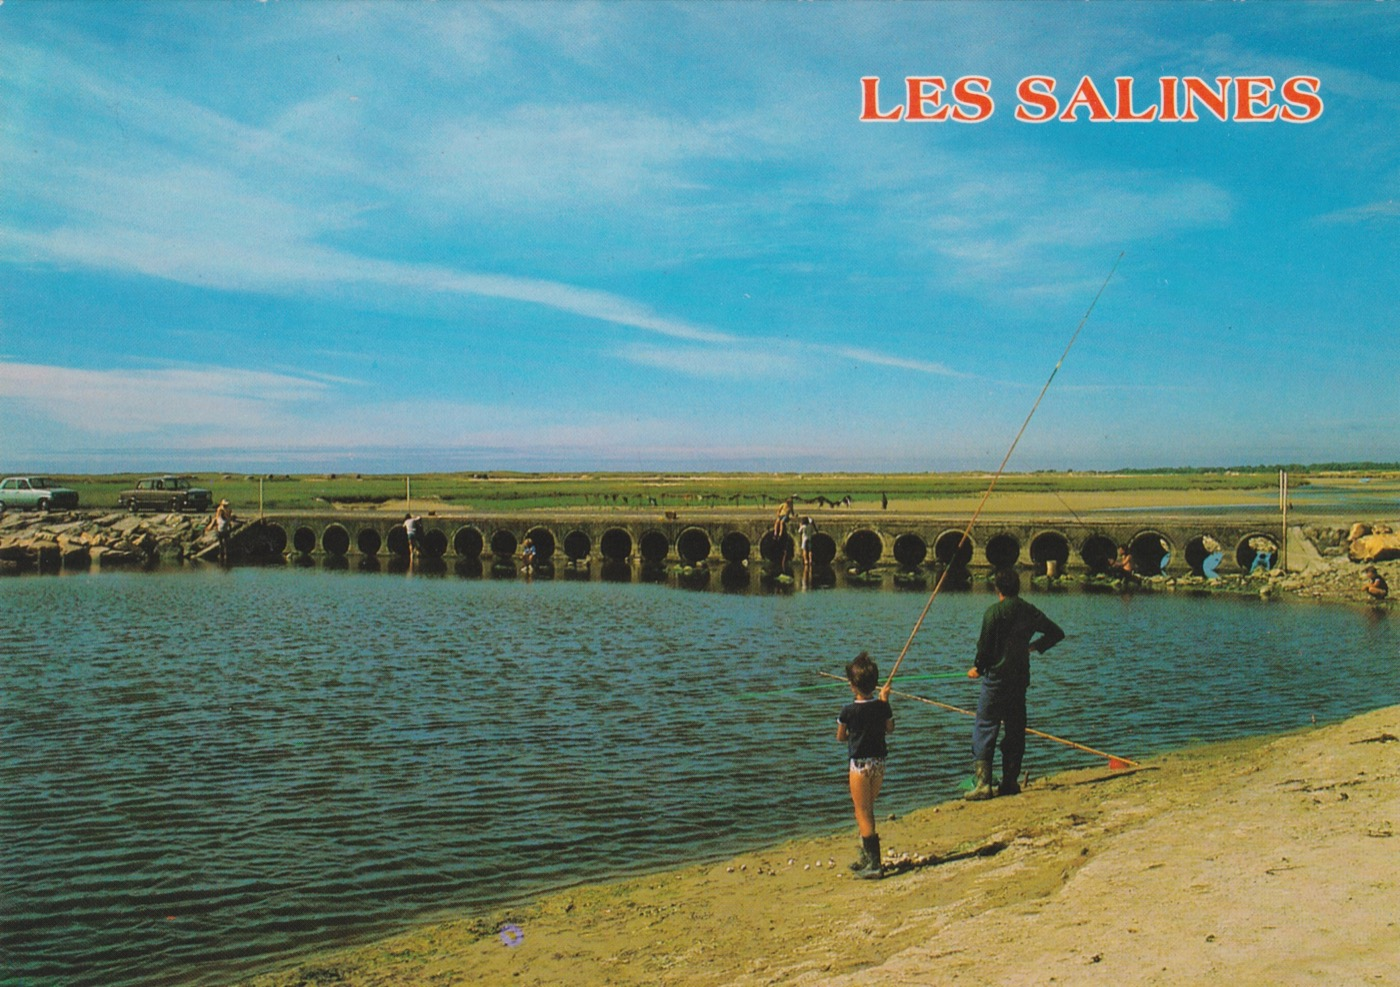 1973 St Martin Les salines © collection Jean Claude Ferret